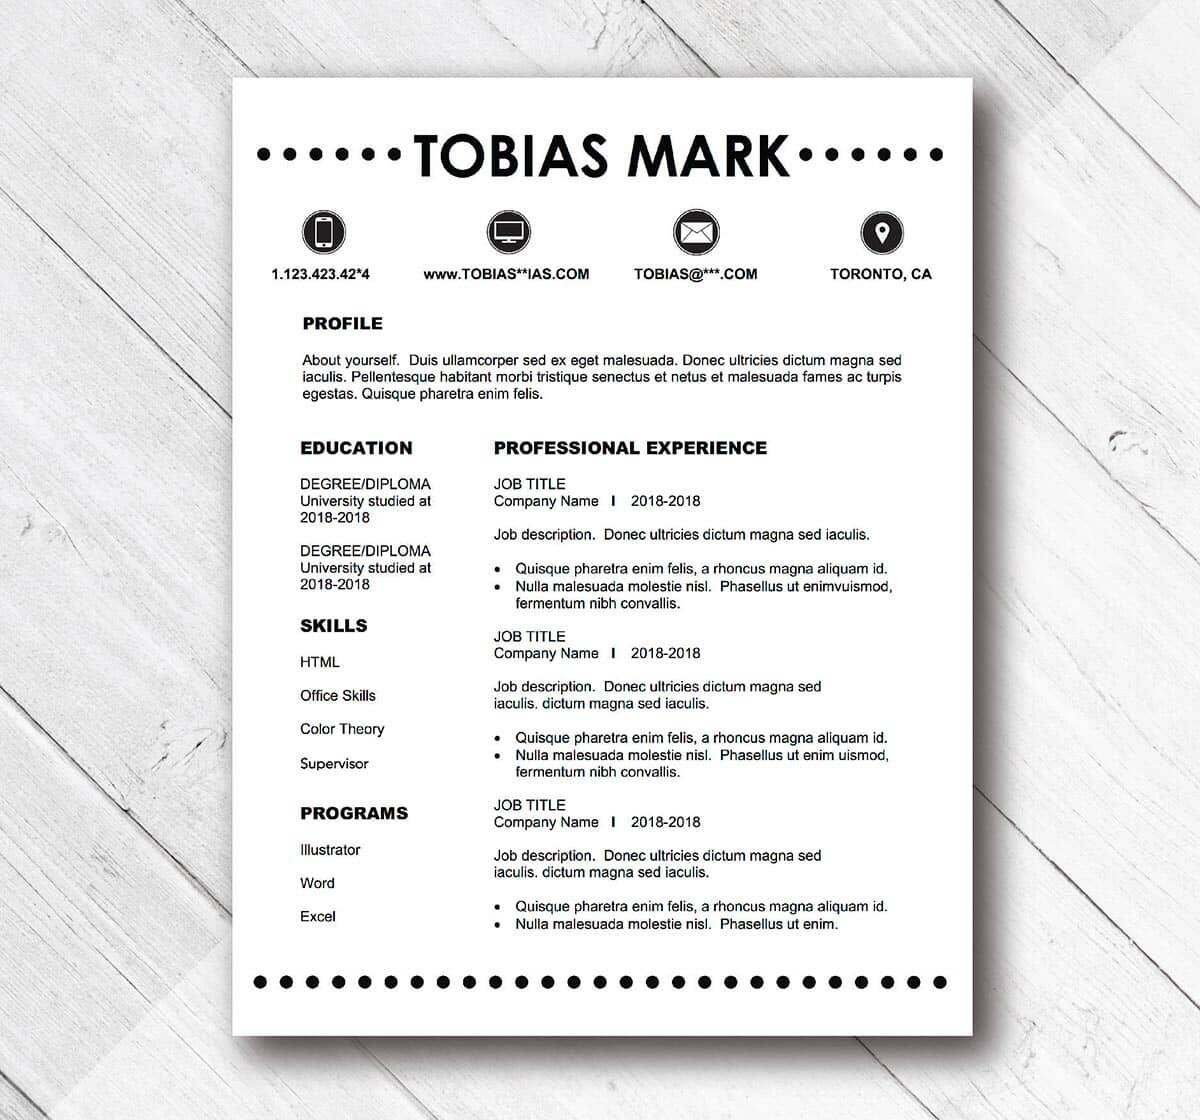 monochrome example of simple resume